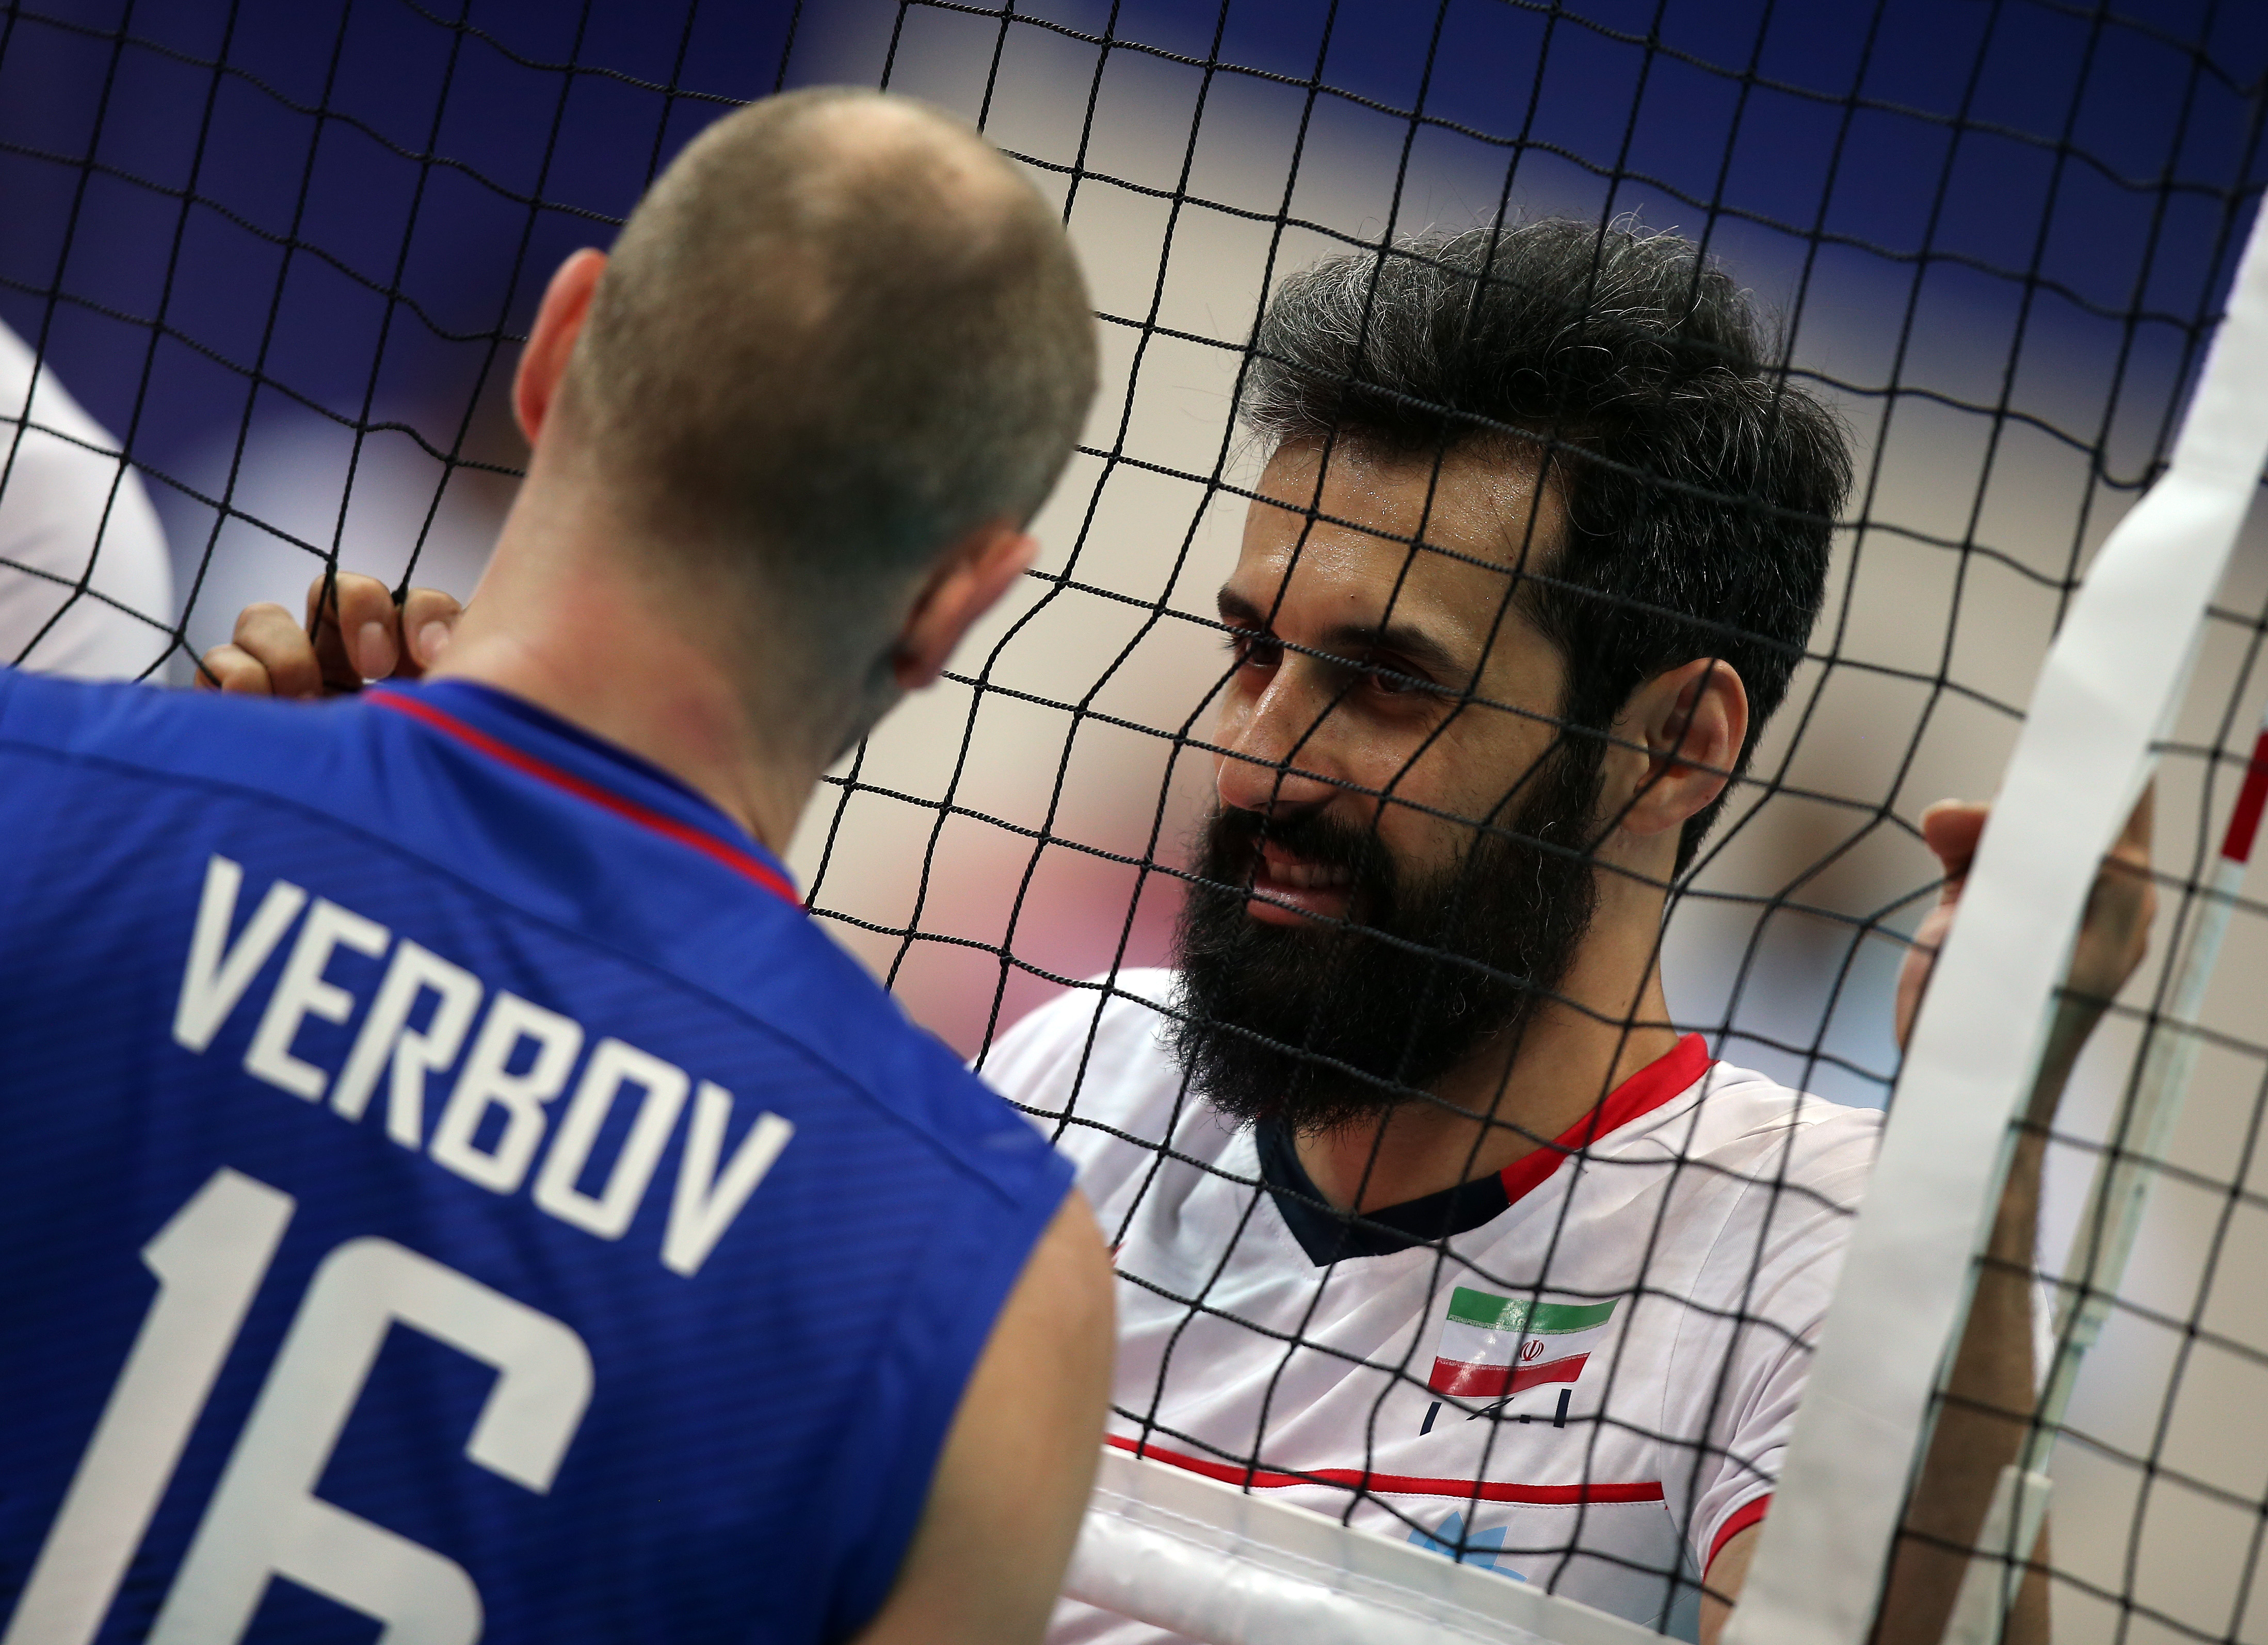 http://www.fivb.org/Vis2009/Images/GetImage.asmx?No=201480078&maxSize=960